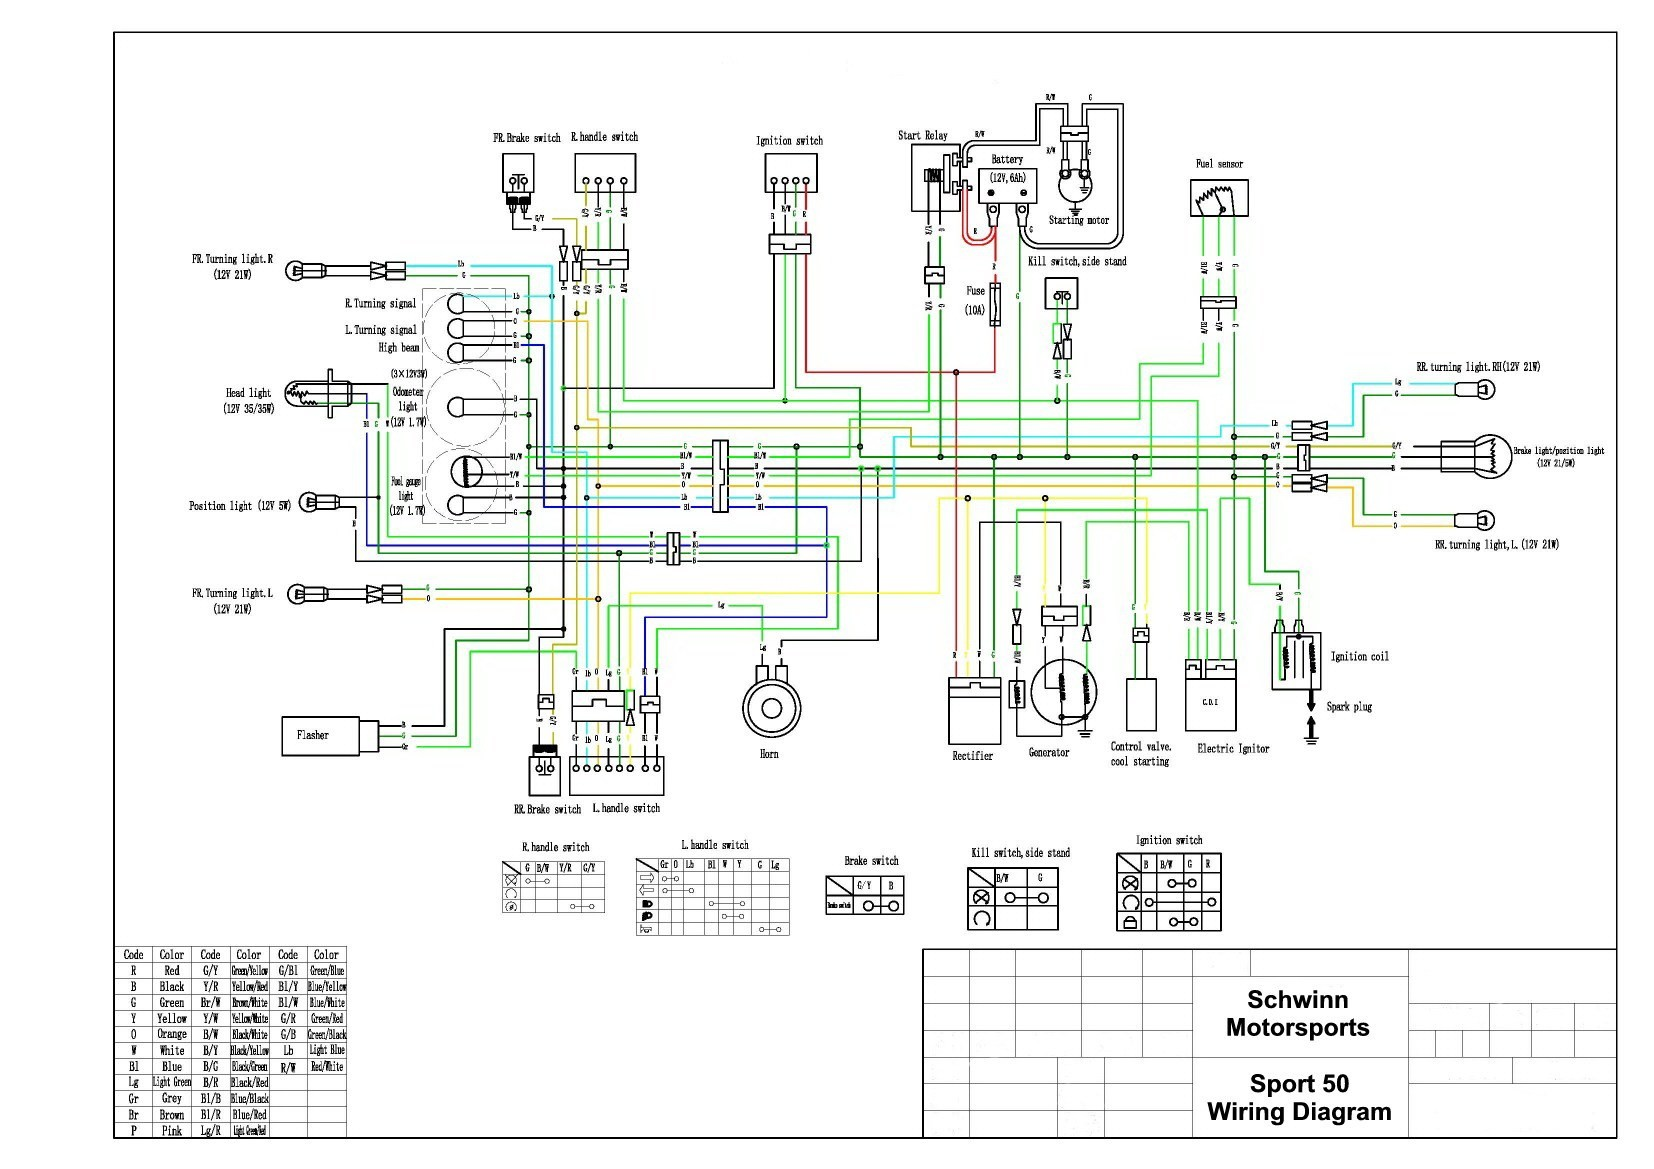 Amp Research Power Step Wiring Diagram Hoveround Wiring Diagram Of Amp Research Power Step Wiring Diagram